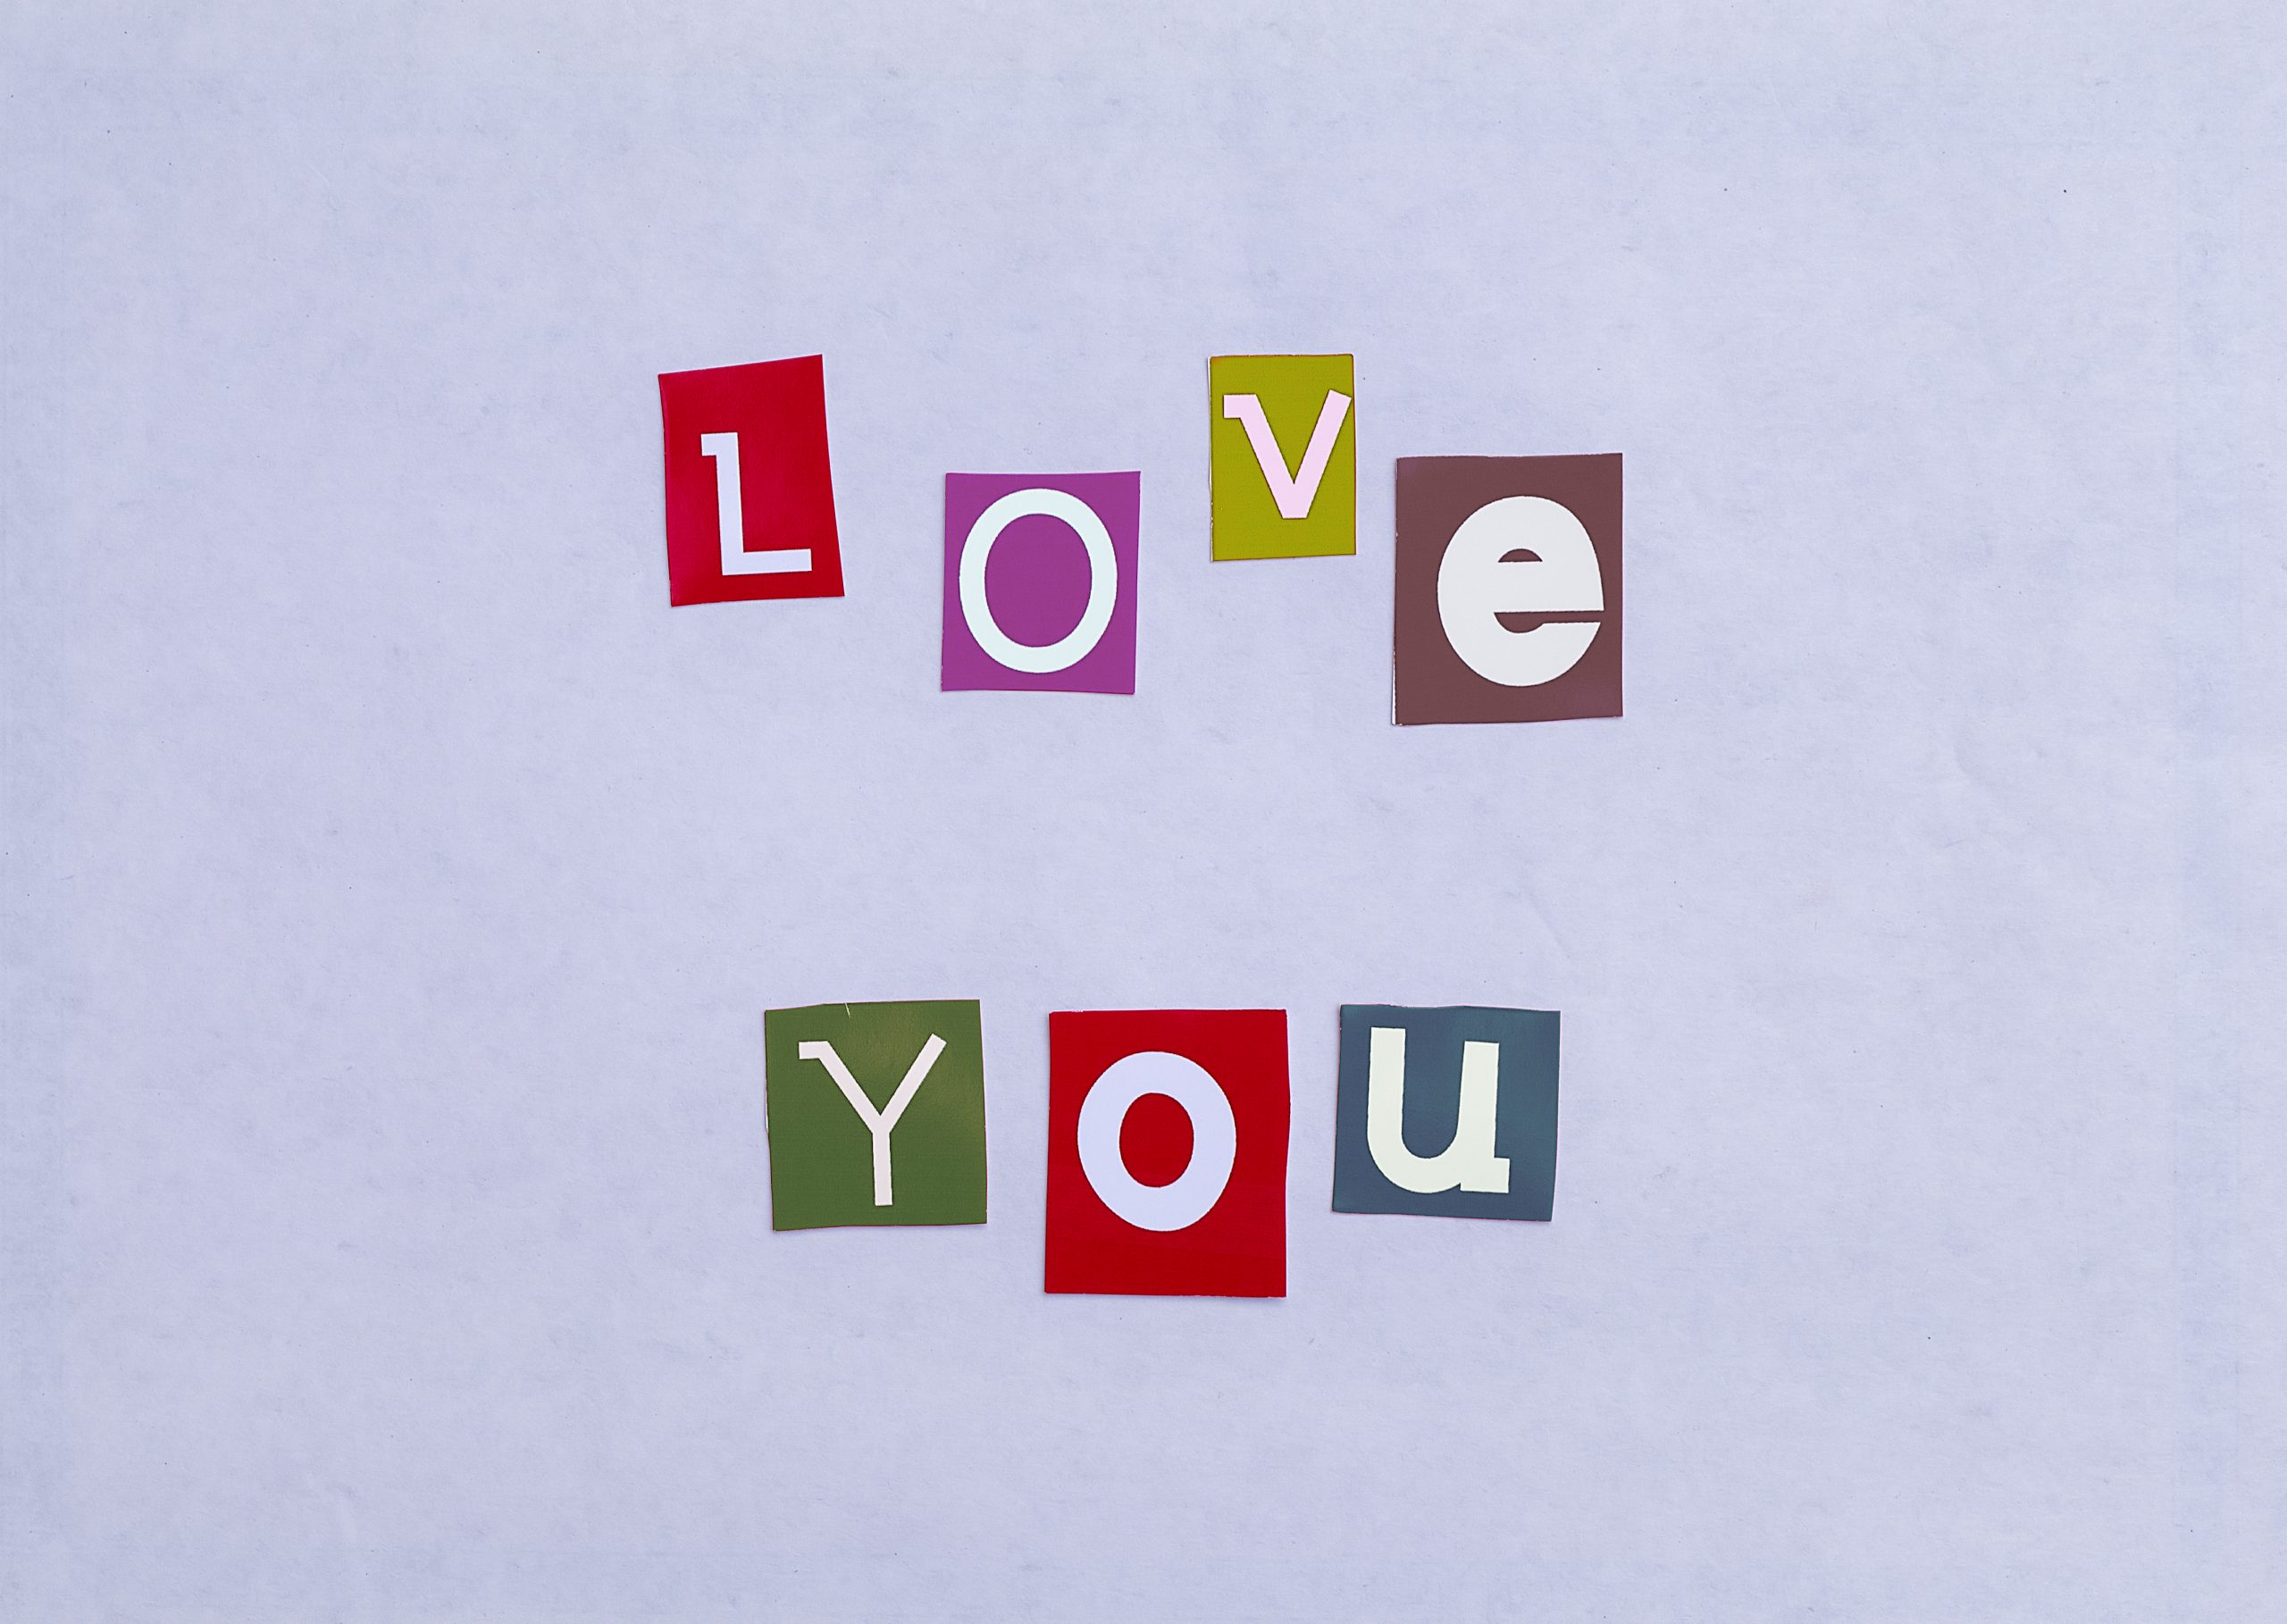 Love you written with stickers